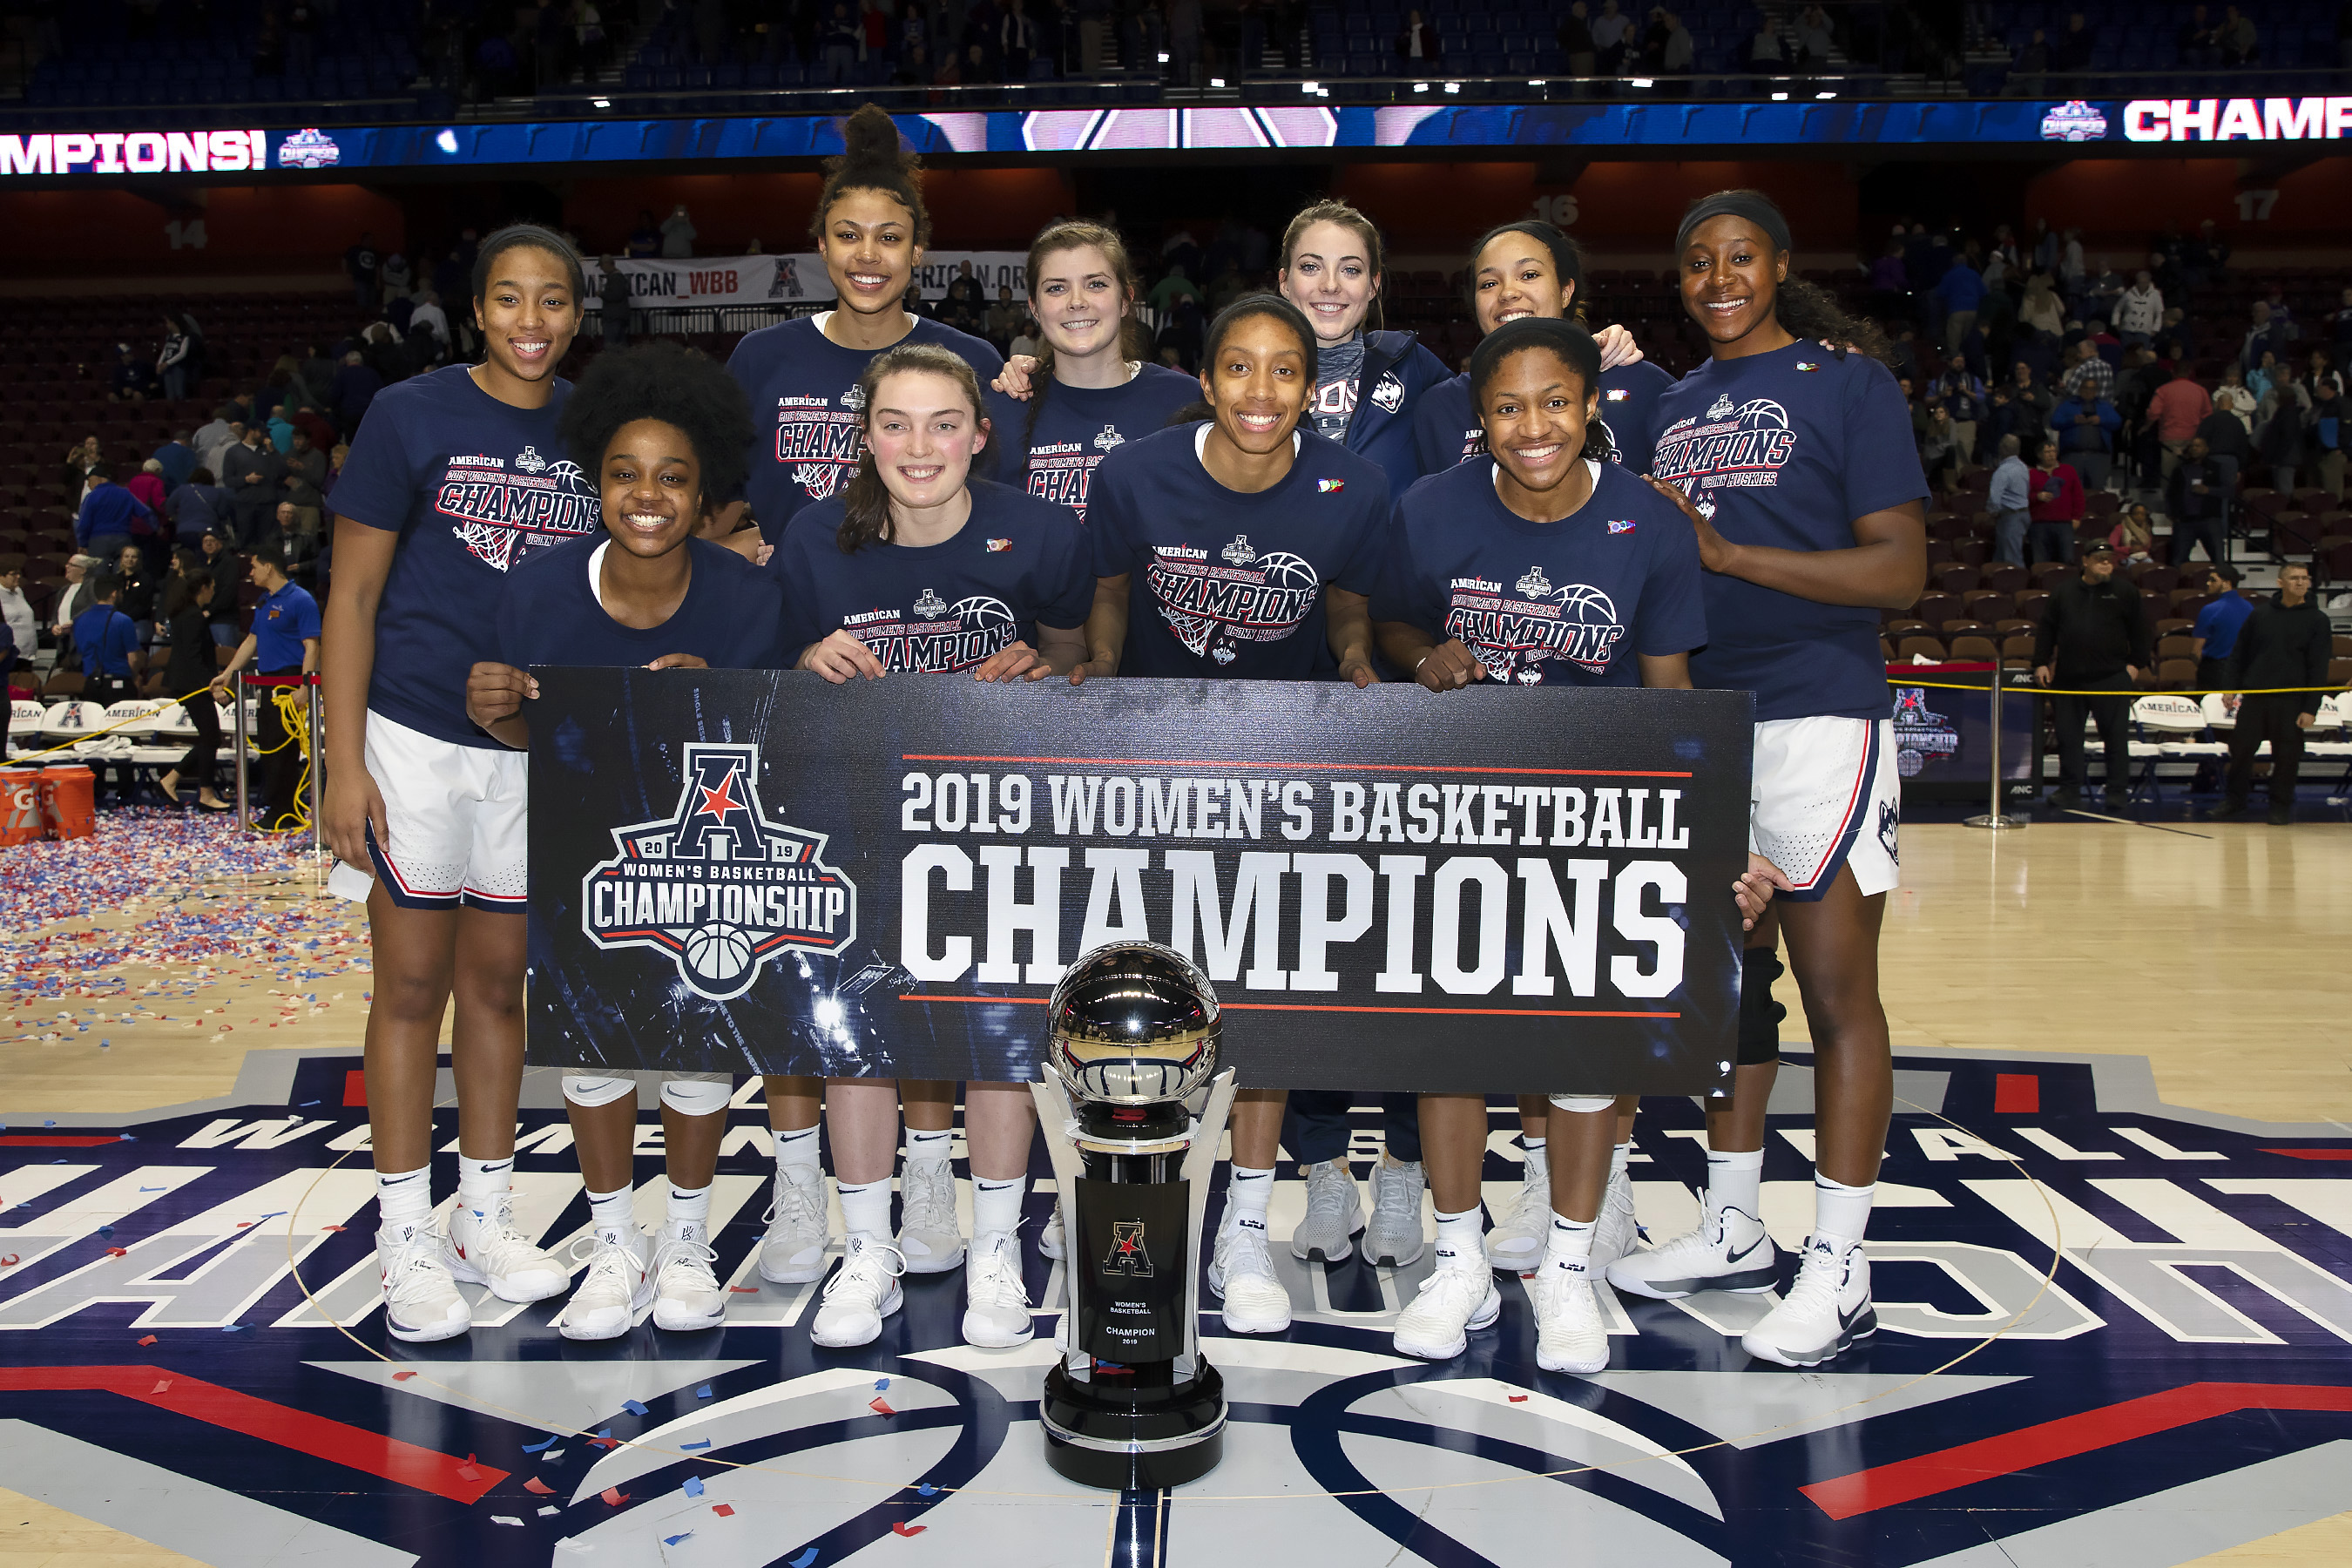 The Huskies defeated UCF 66-45 for their sixth consecutive conference championship. (Stephen Slade '89 (SFA) for UConn)